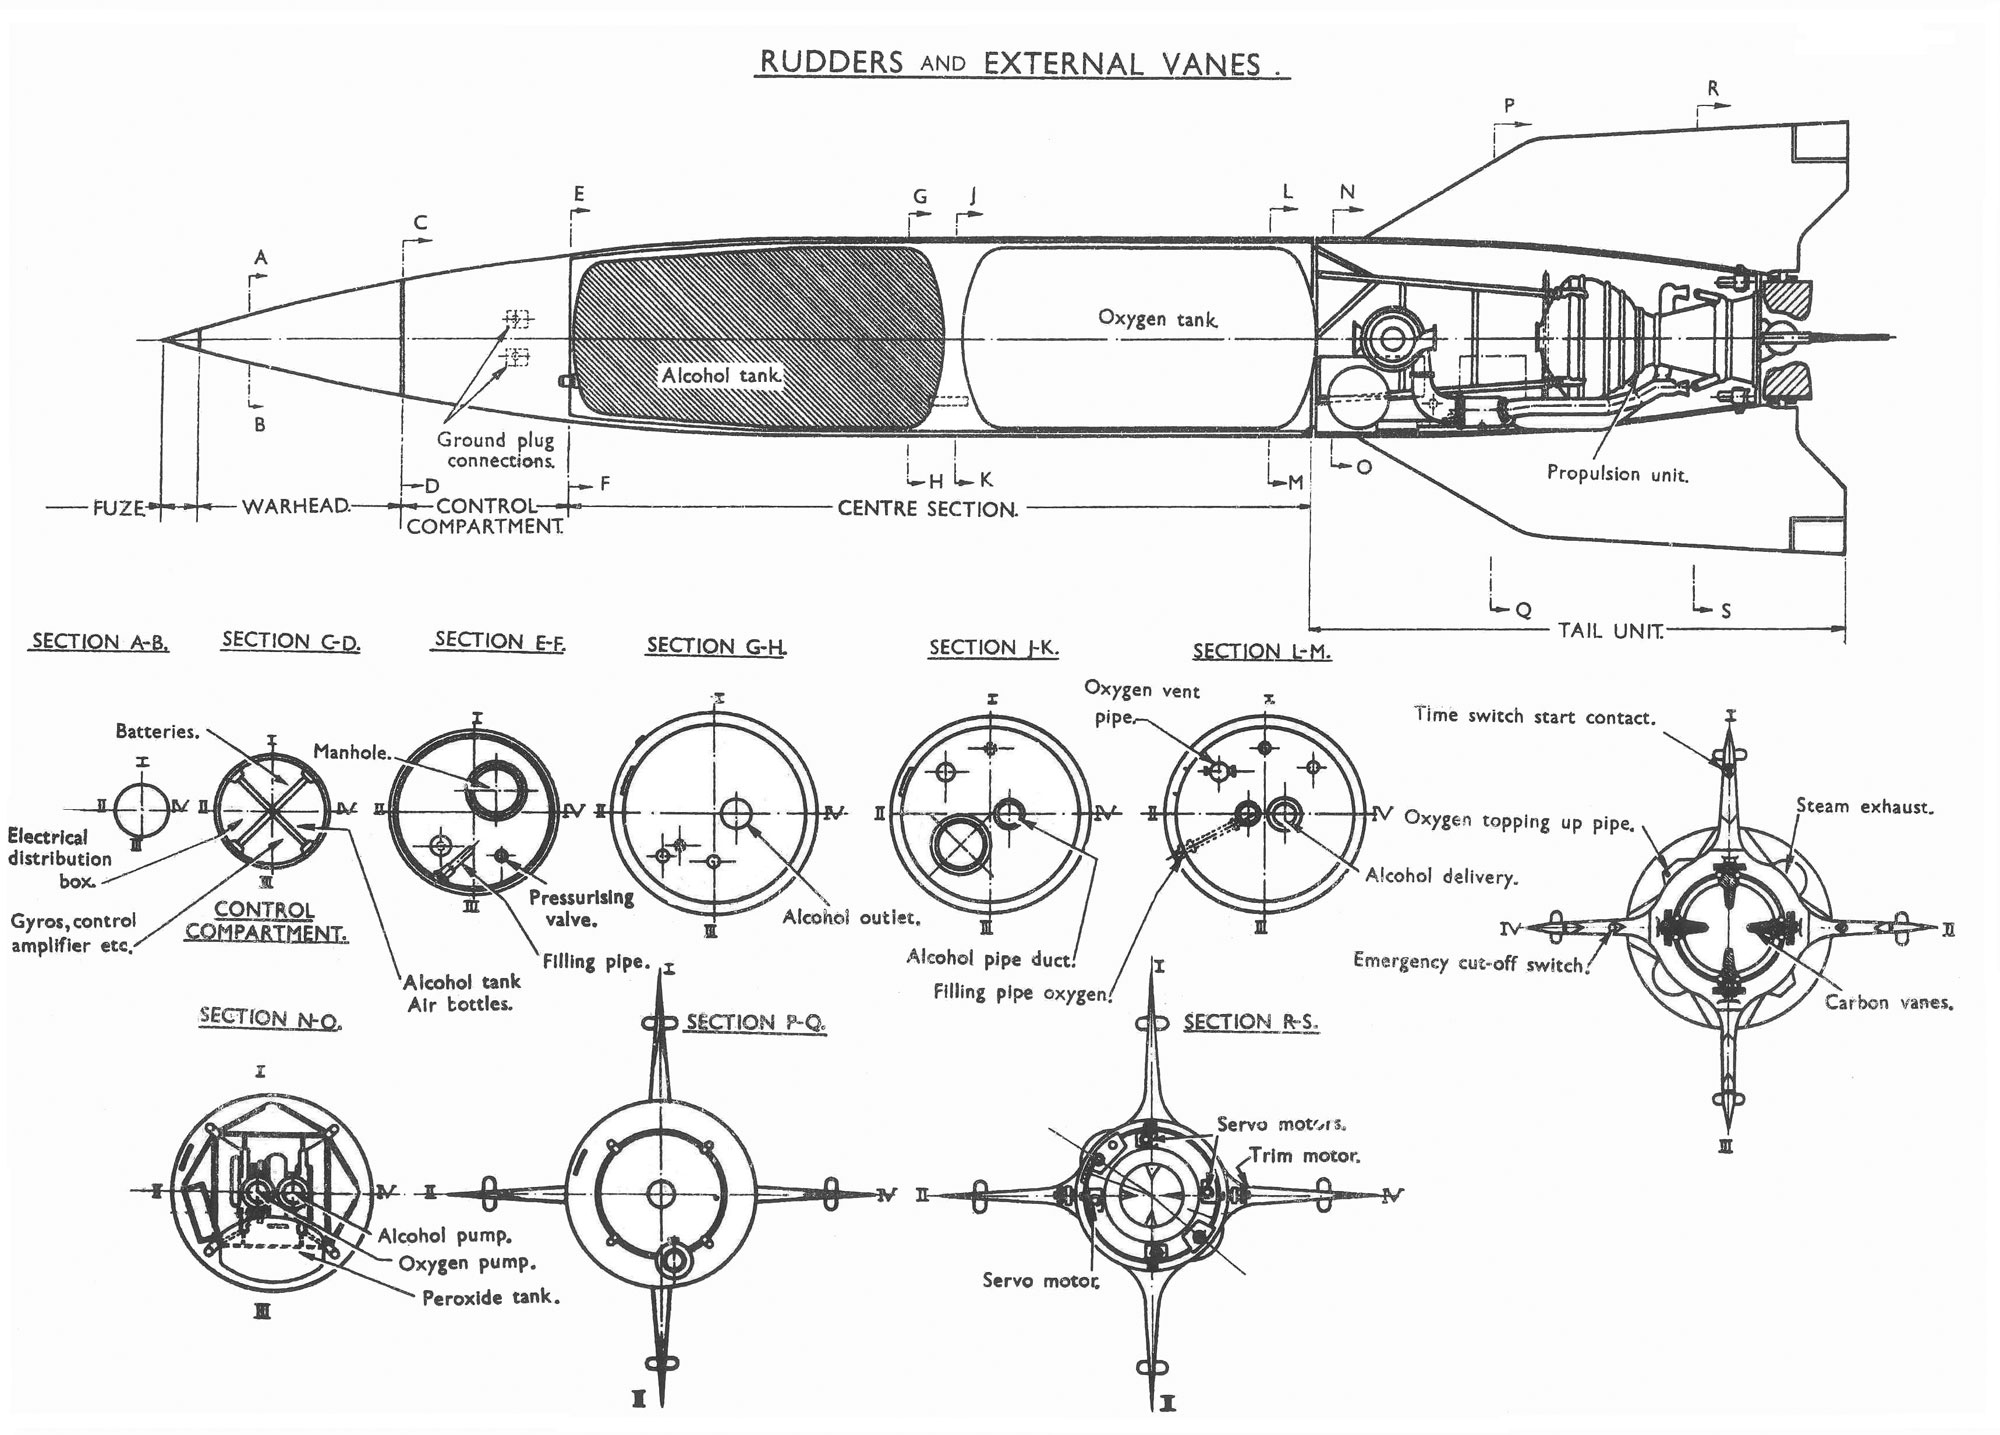 Missile Blueprints Gallery